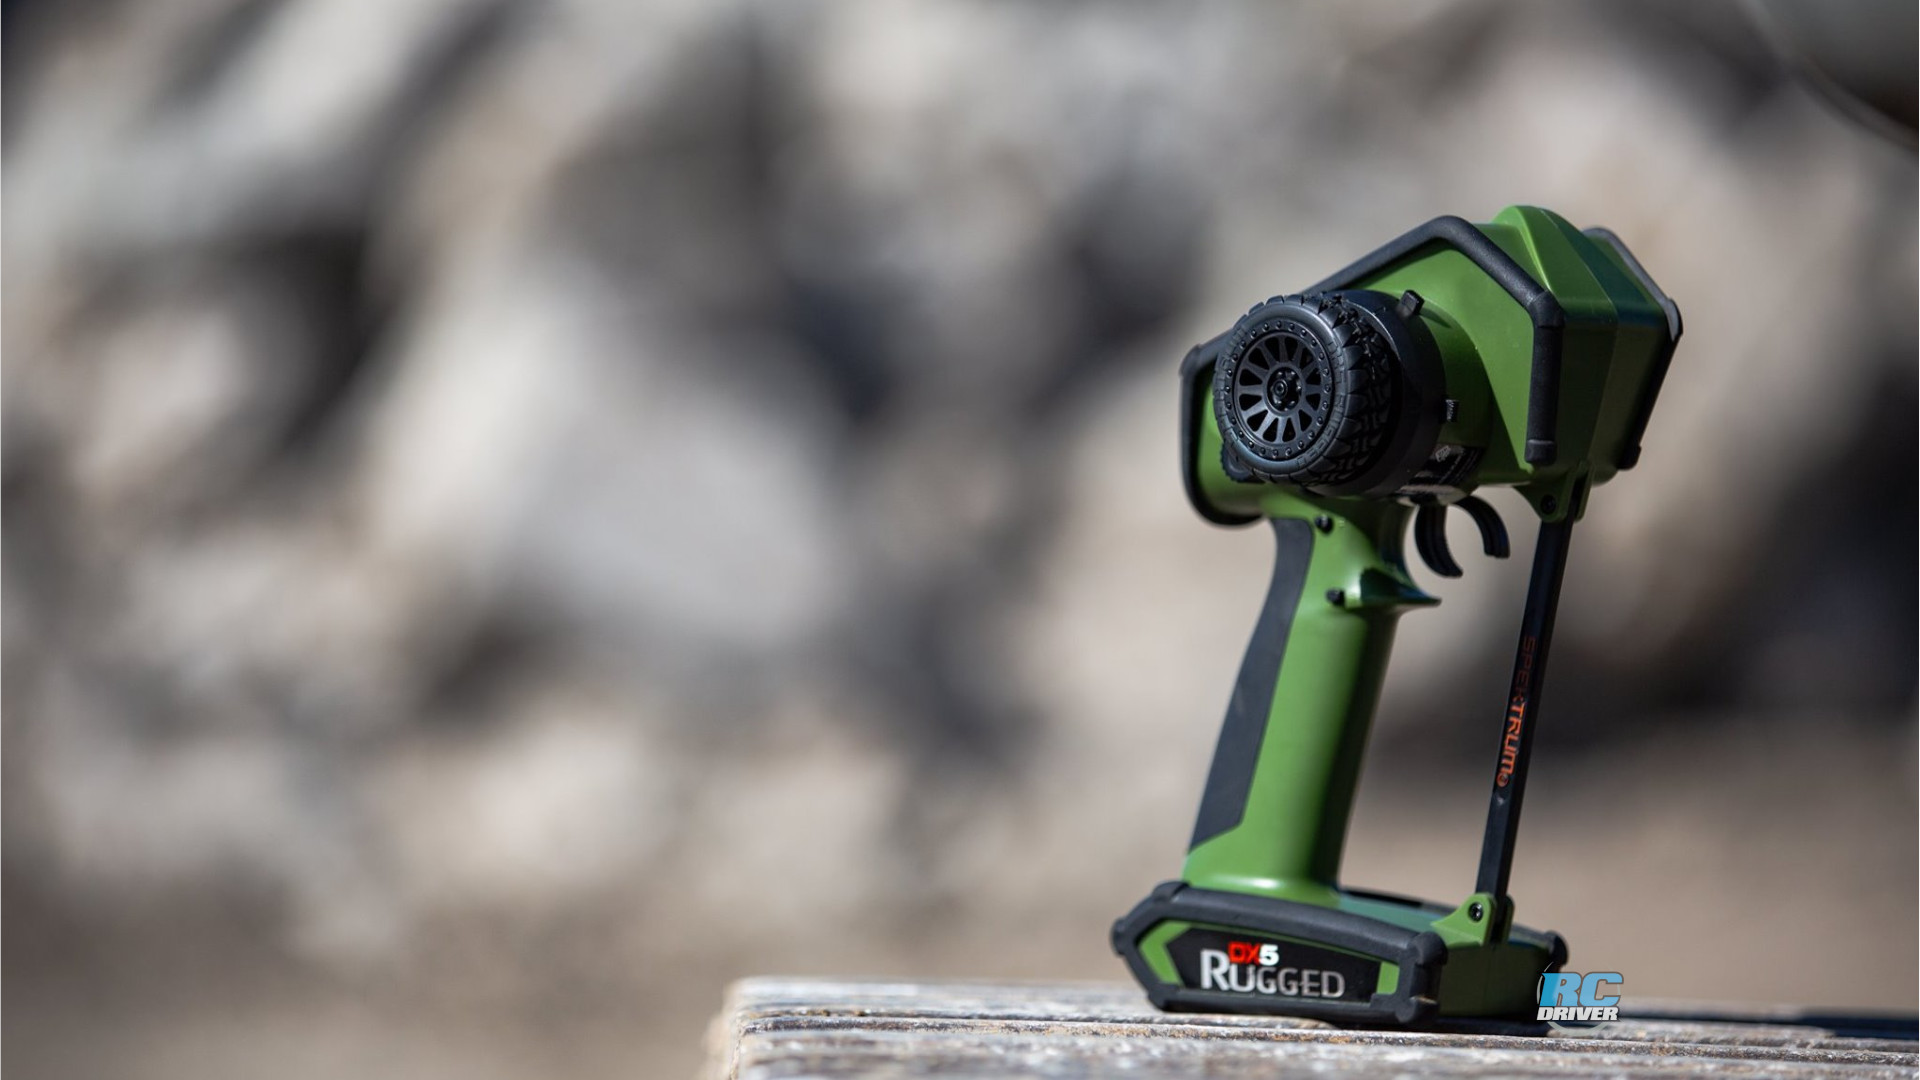 Spektrum DX5 Rugged Green special edition